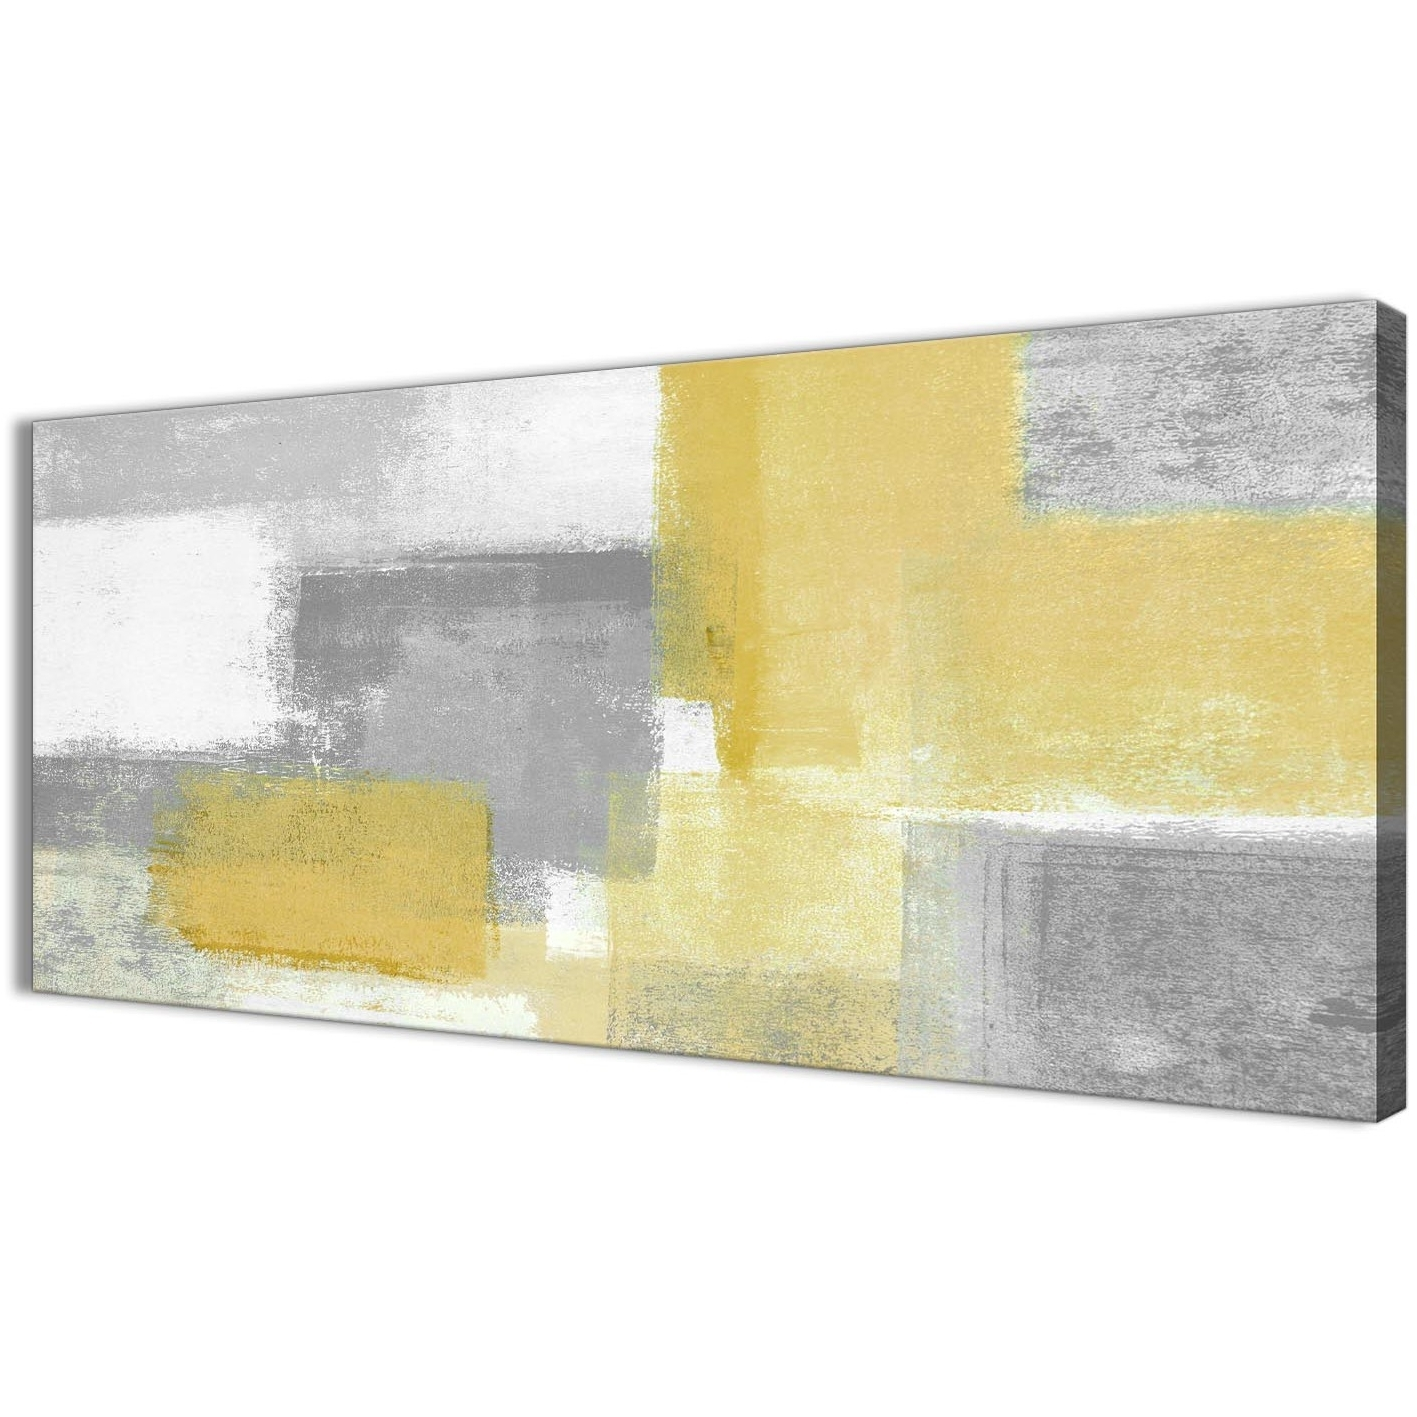 Well Known Yellow And Grey Abstract Wall Art For Mustard Yellow Grey Living Room Canvas Wall Art Accessories (View 5 of 15)